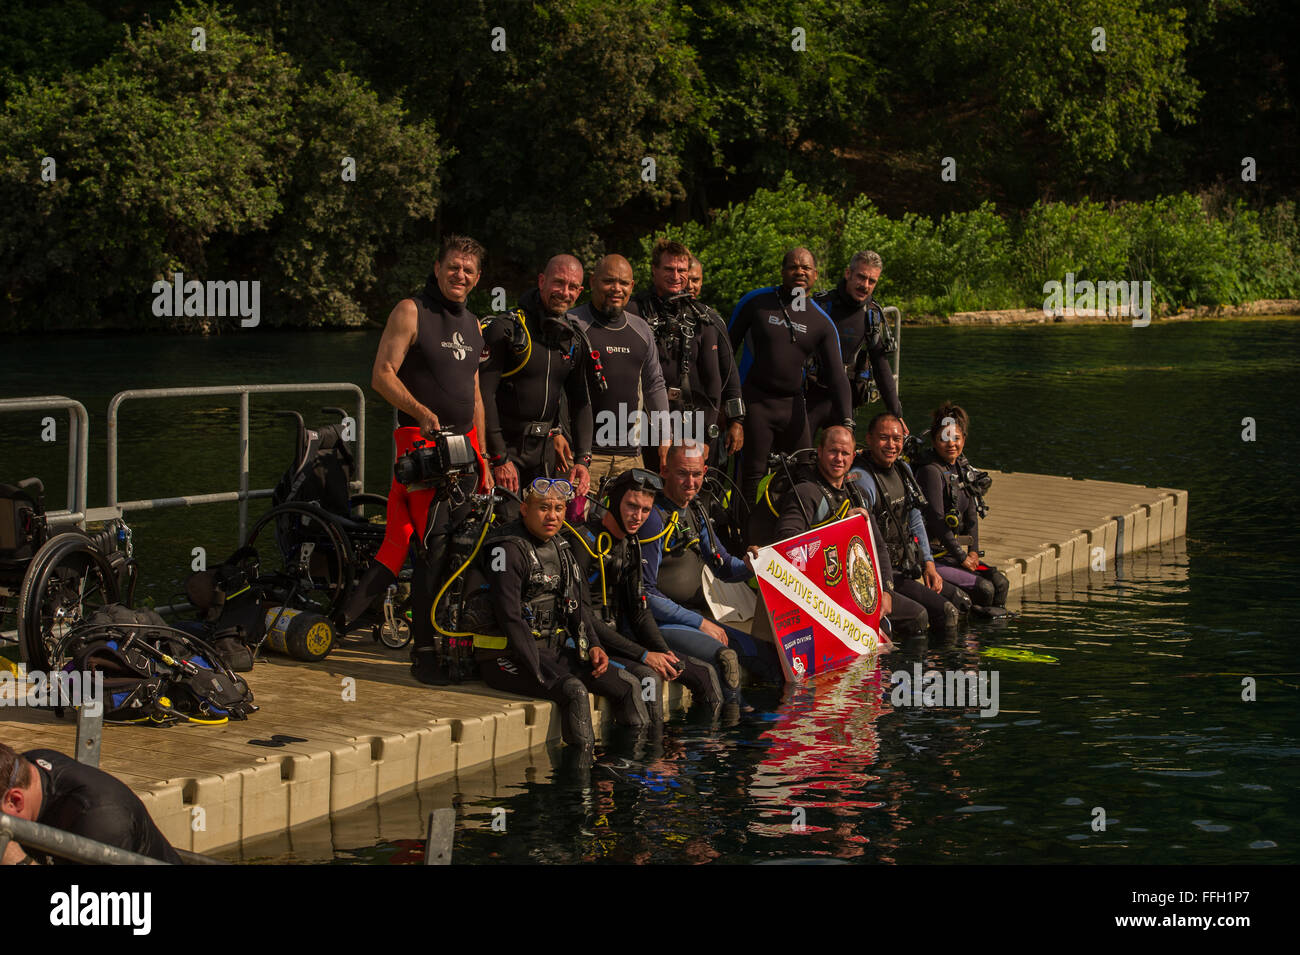 Wounded Warriors takes a group photo before starting a scuba diving class at Spring Lake in San Marcos, Texas. The - Stock Image